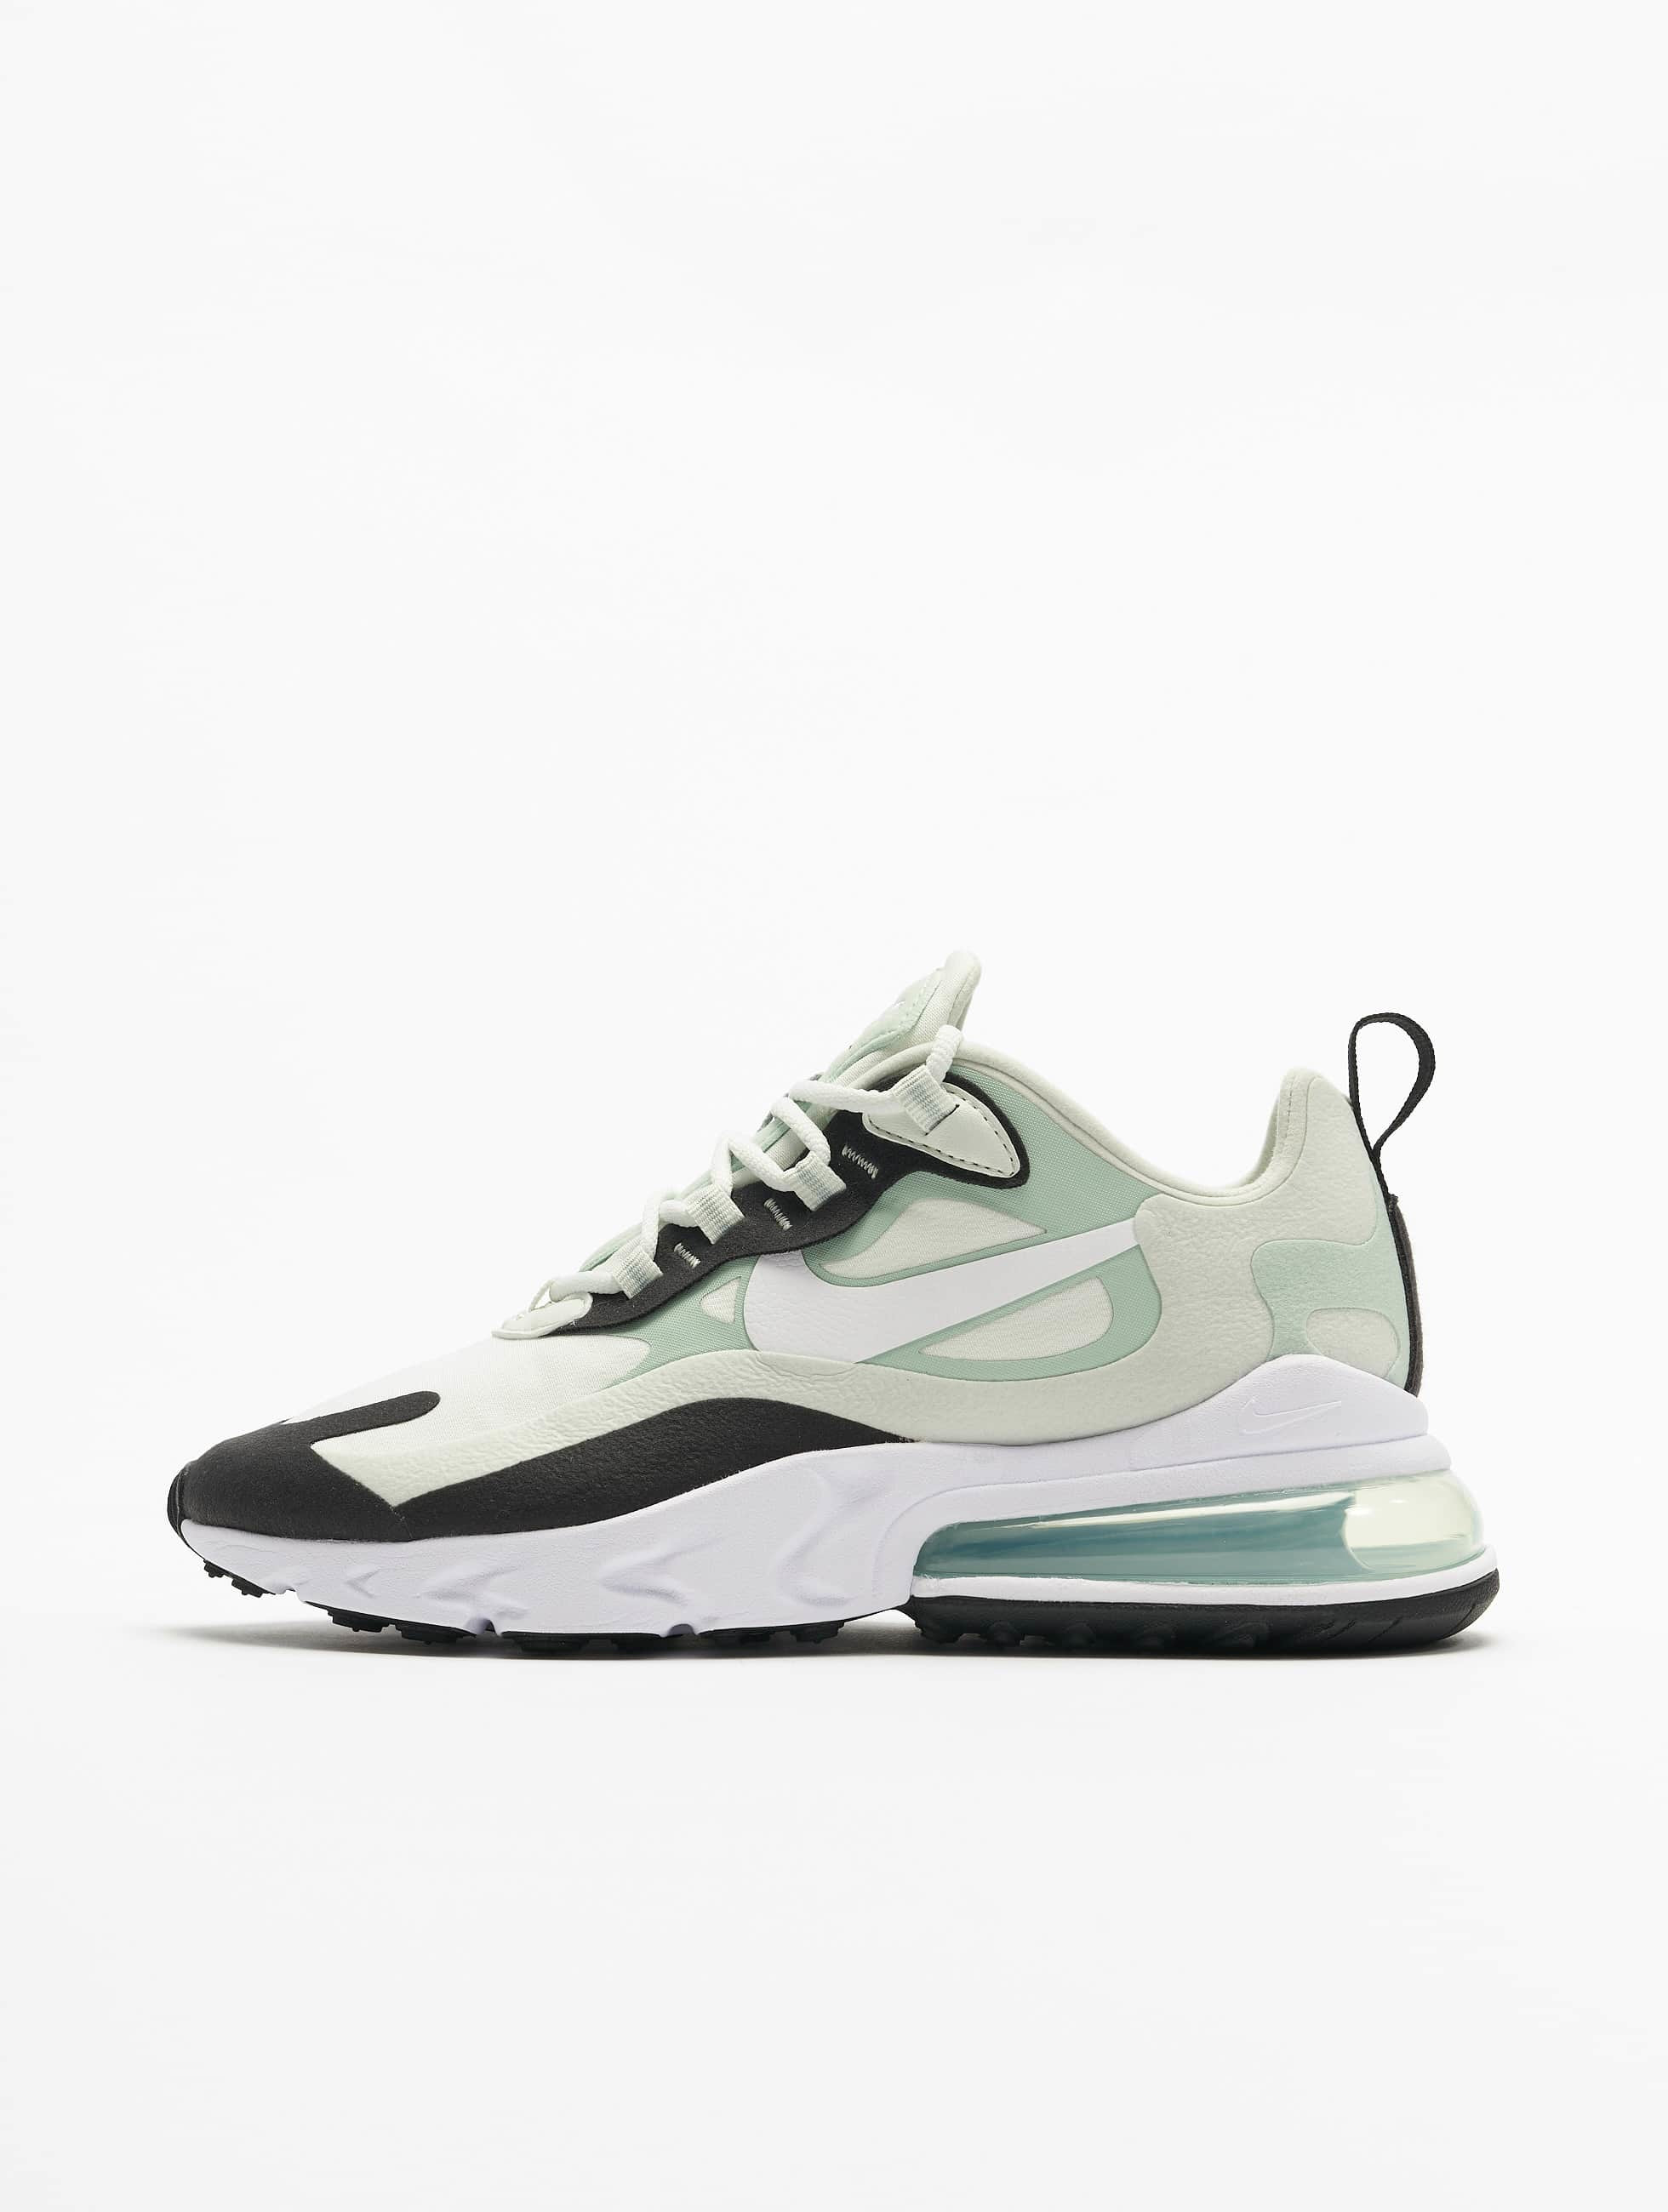 nike air max command camouflage